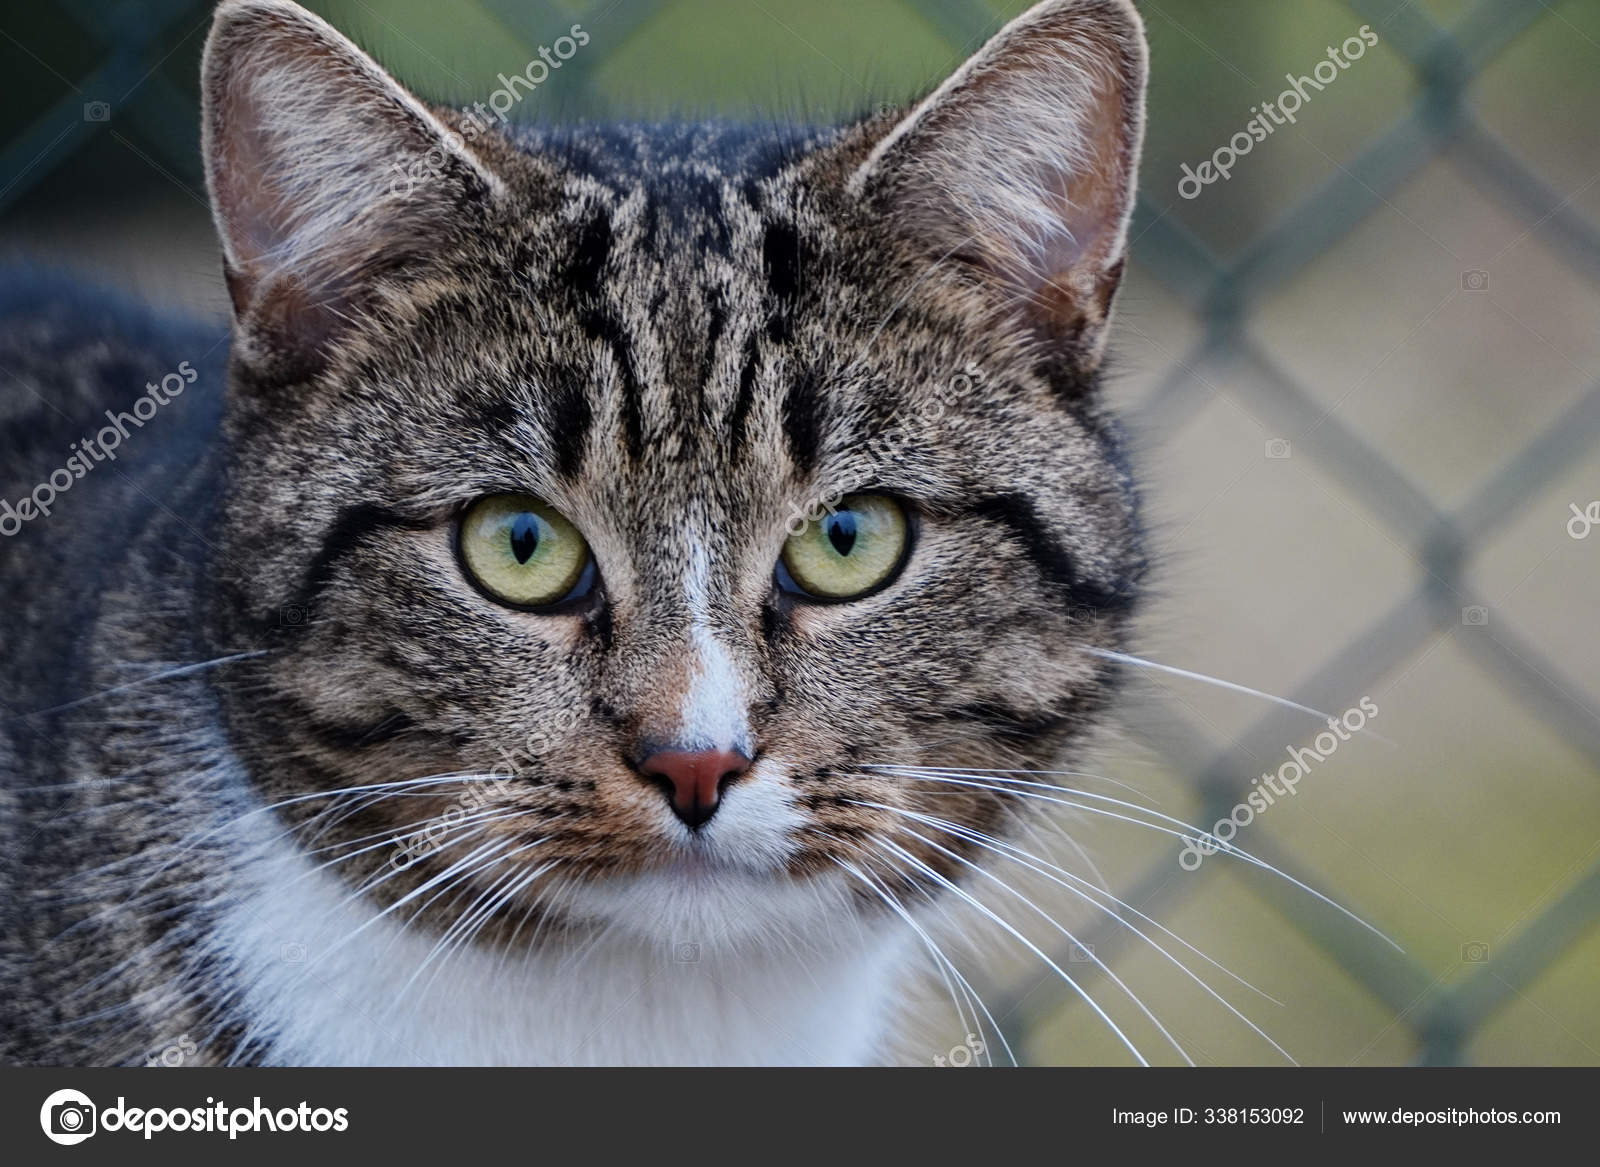 Head Of A Gray Tabby Cat With Green Eyes And A White Breast Clos Stock Photo C Sania01 338153092